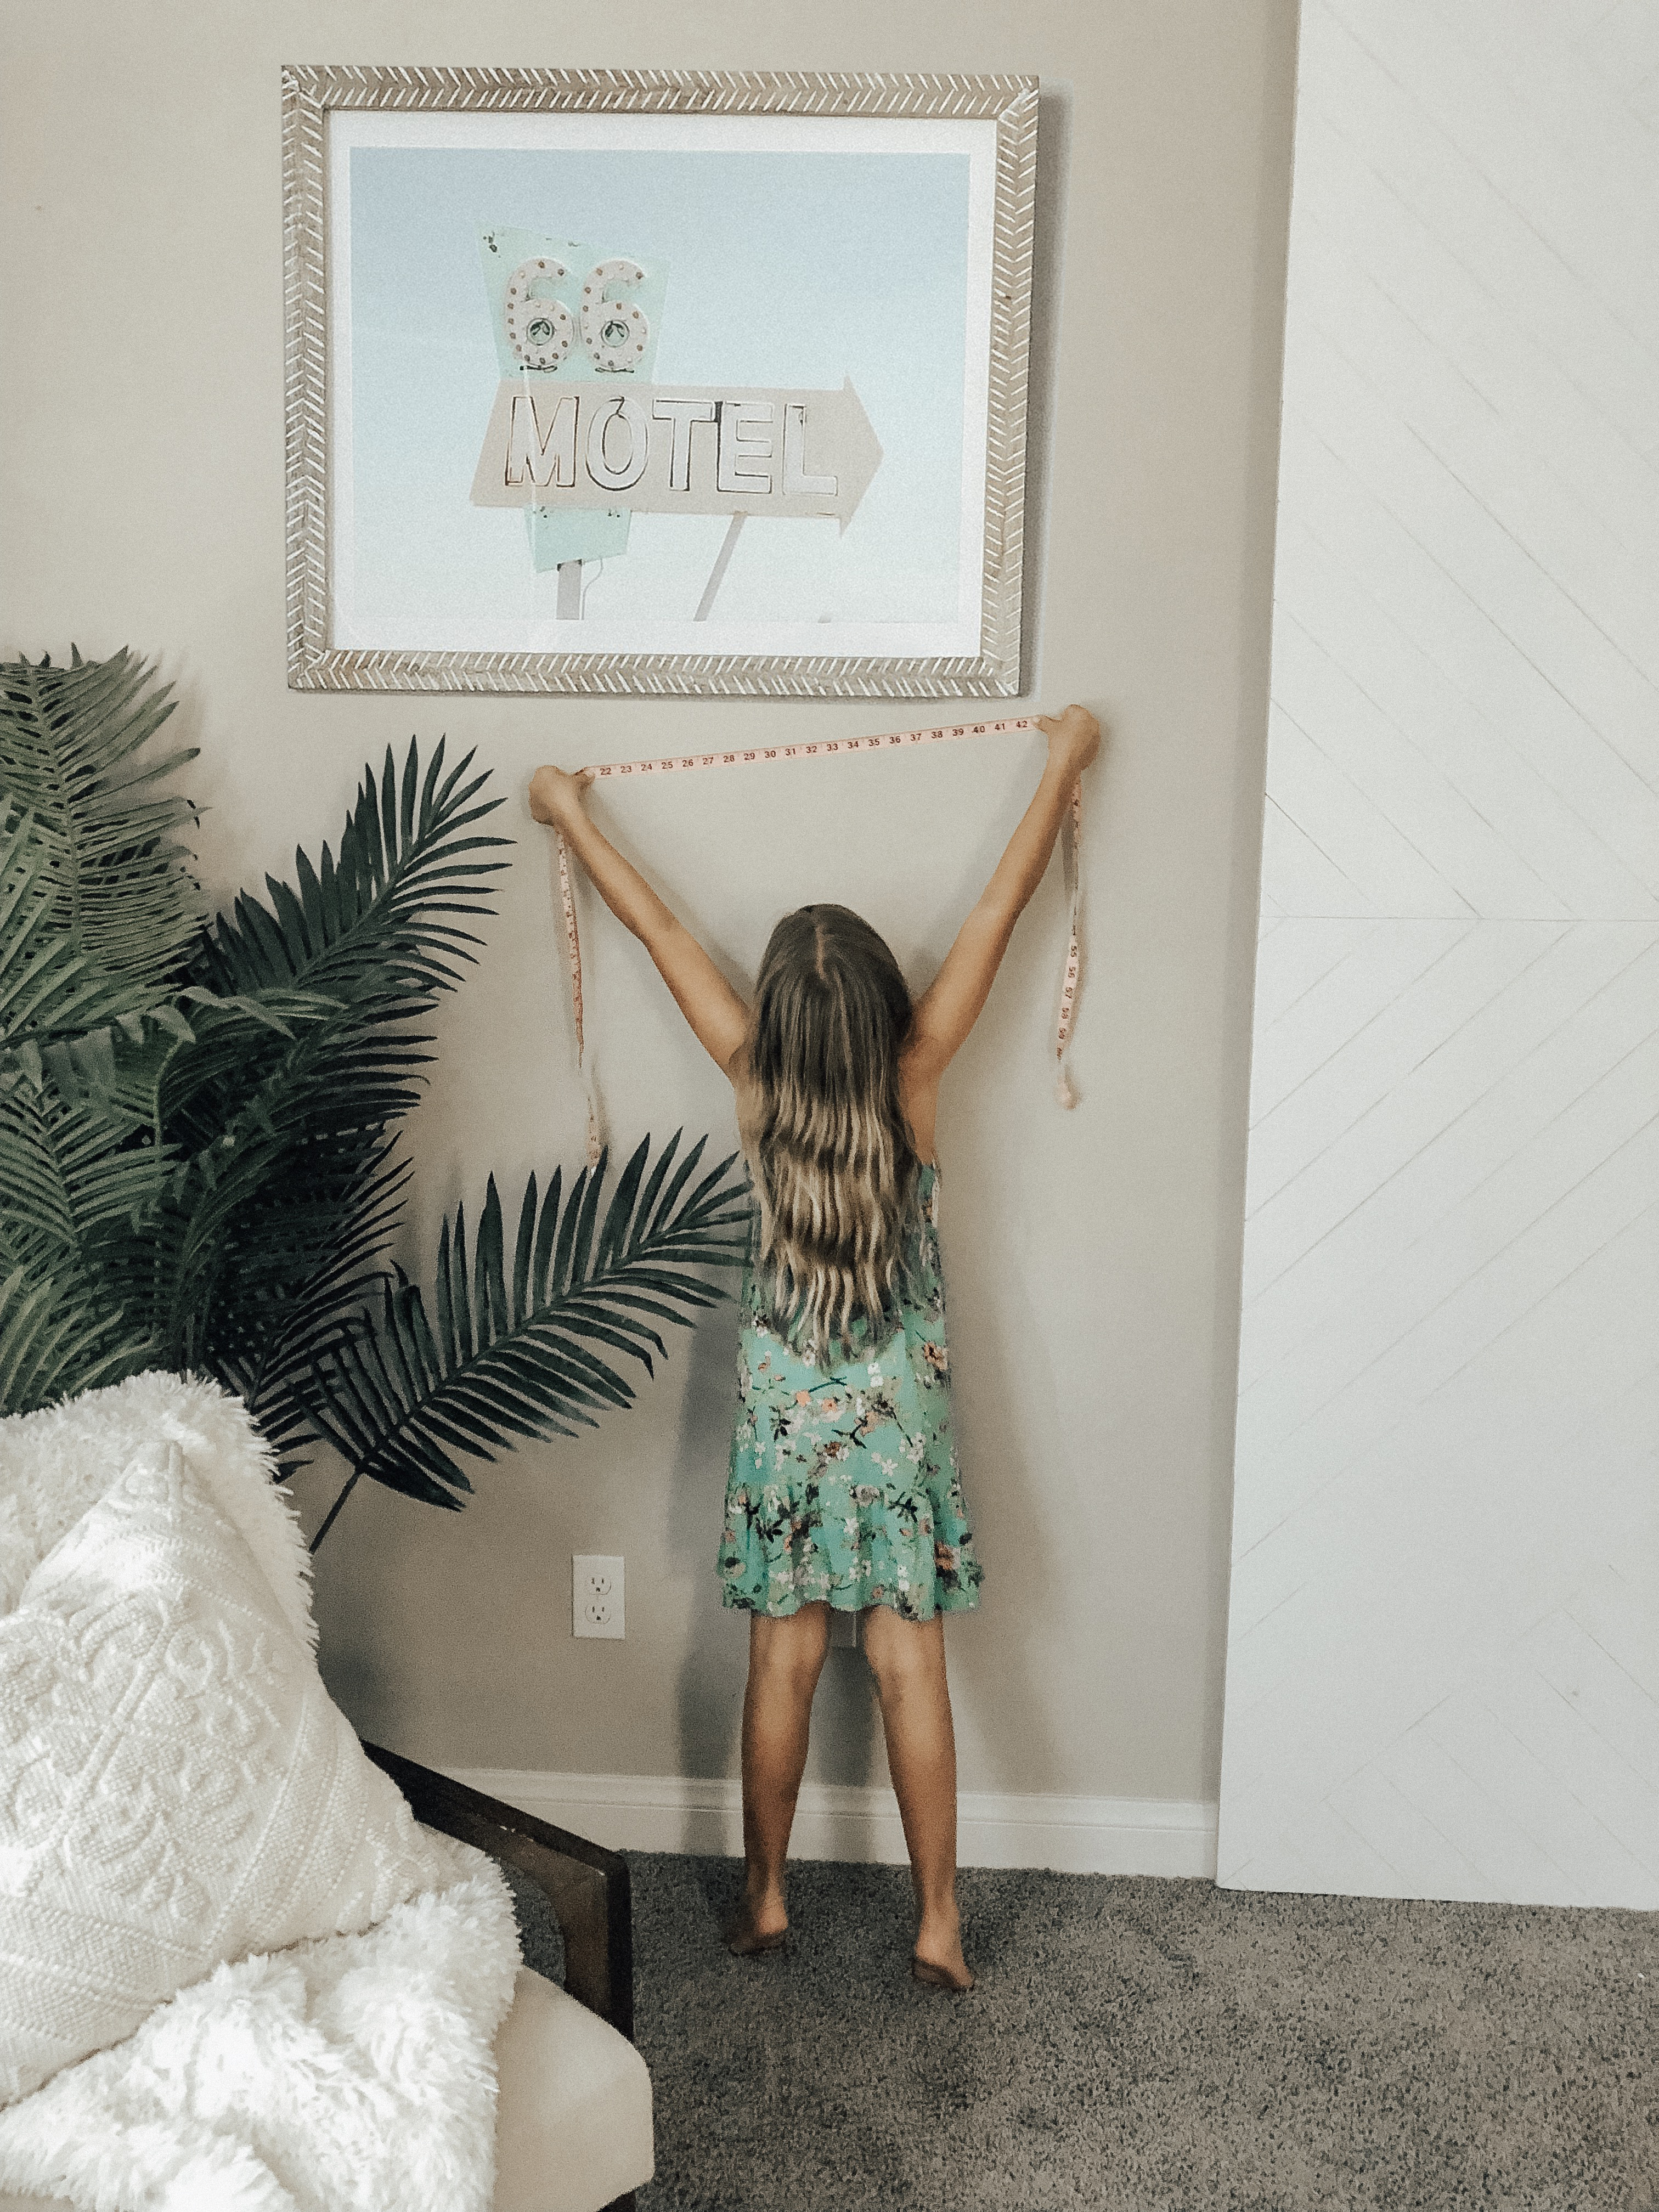 STYLING MY HOME WITH MINTED ART- Jaclyn De Leon Style + Minted art + stylng the home + home decor + wall art + home inspiration + guide to updating your art + art collector + retro style art + interior design + having fun with kids + decorating with kids